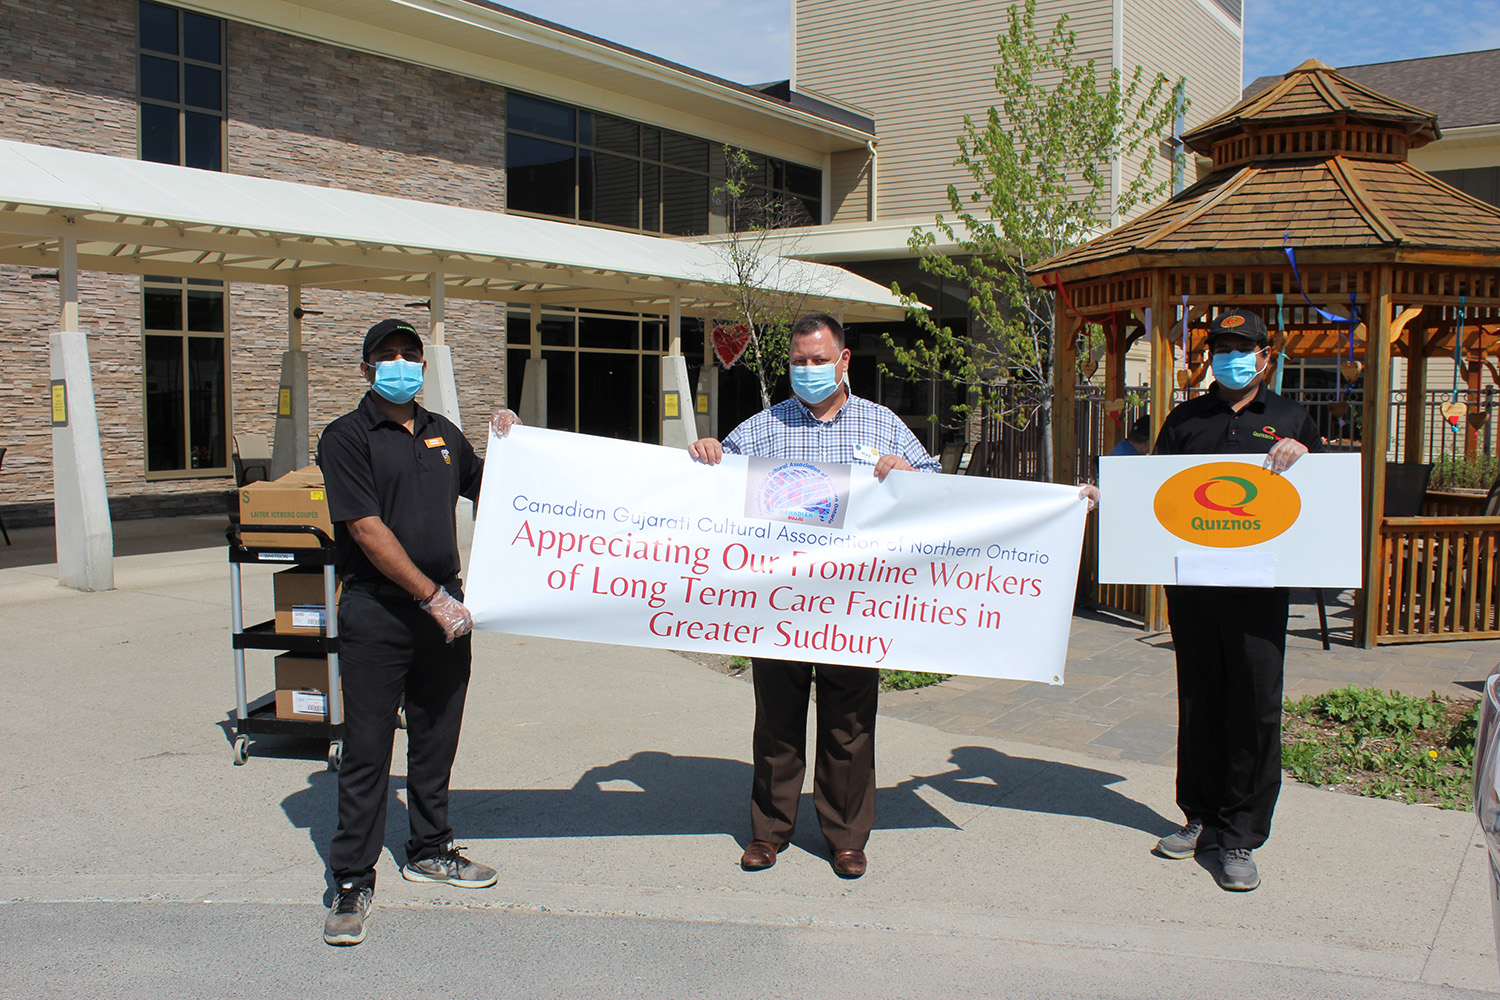 Manthan Patel and Dhiren Patel holding banner showing donation